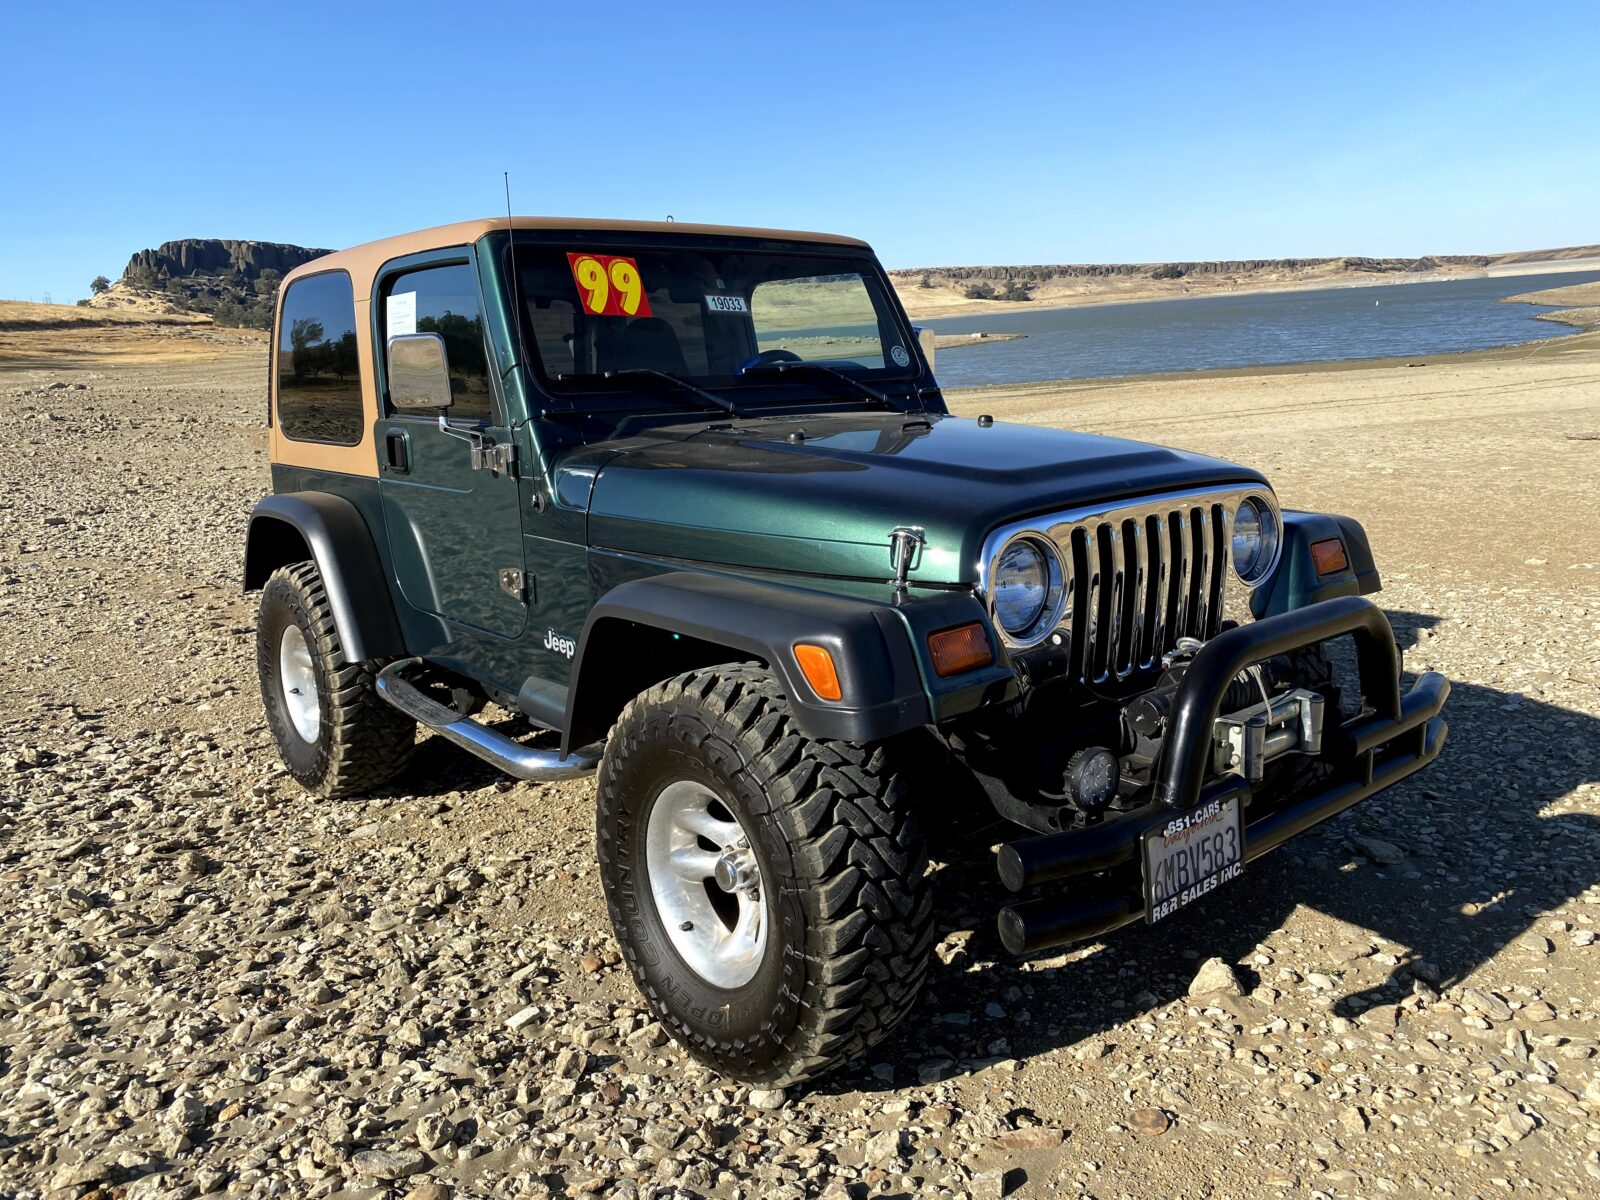 Check out this low mileage 1999 Jeep Wrangler, offered by WestMitsubishi.com